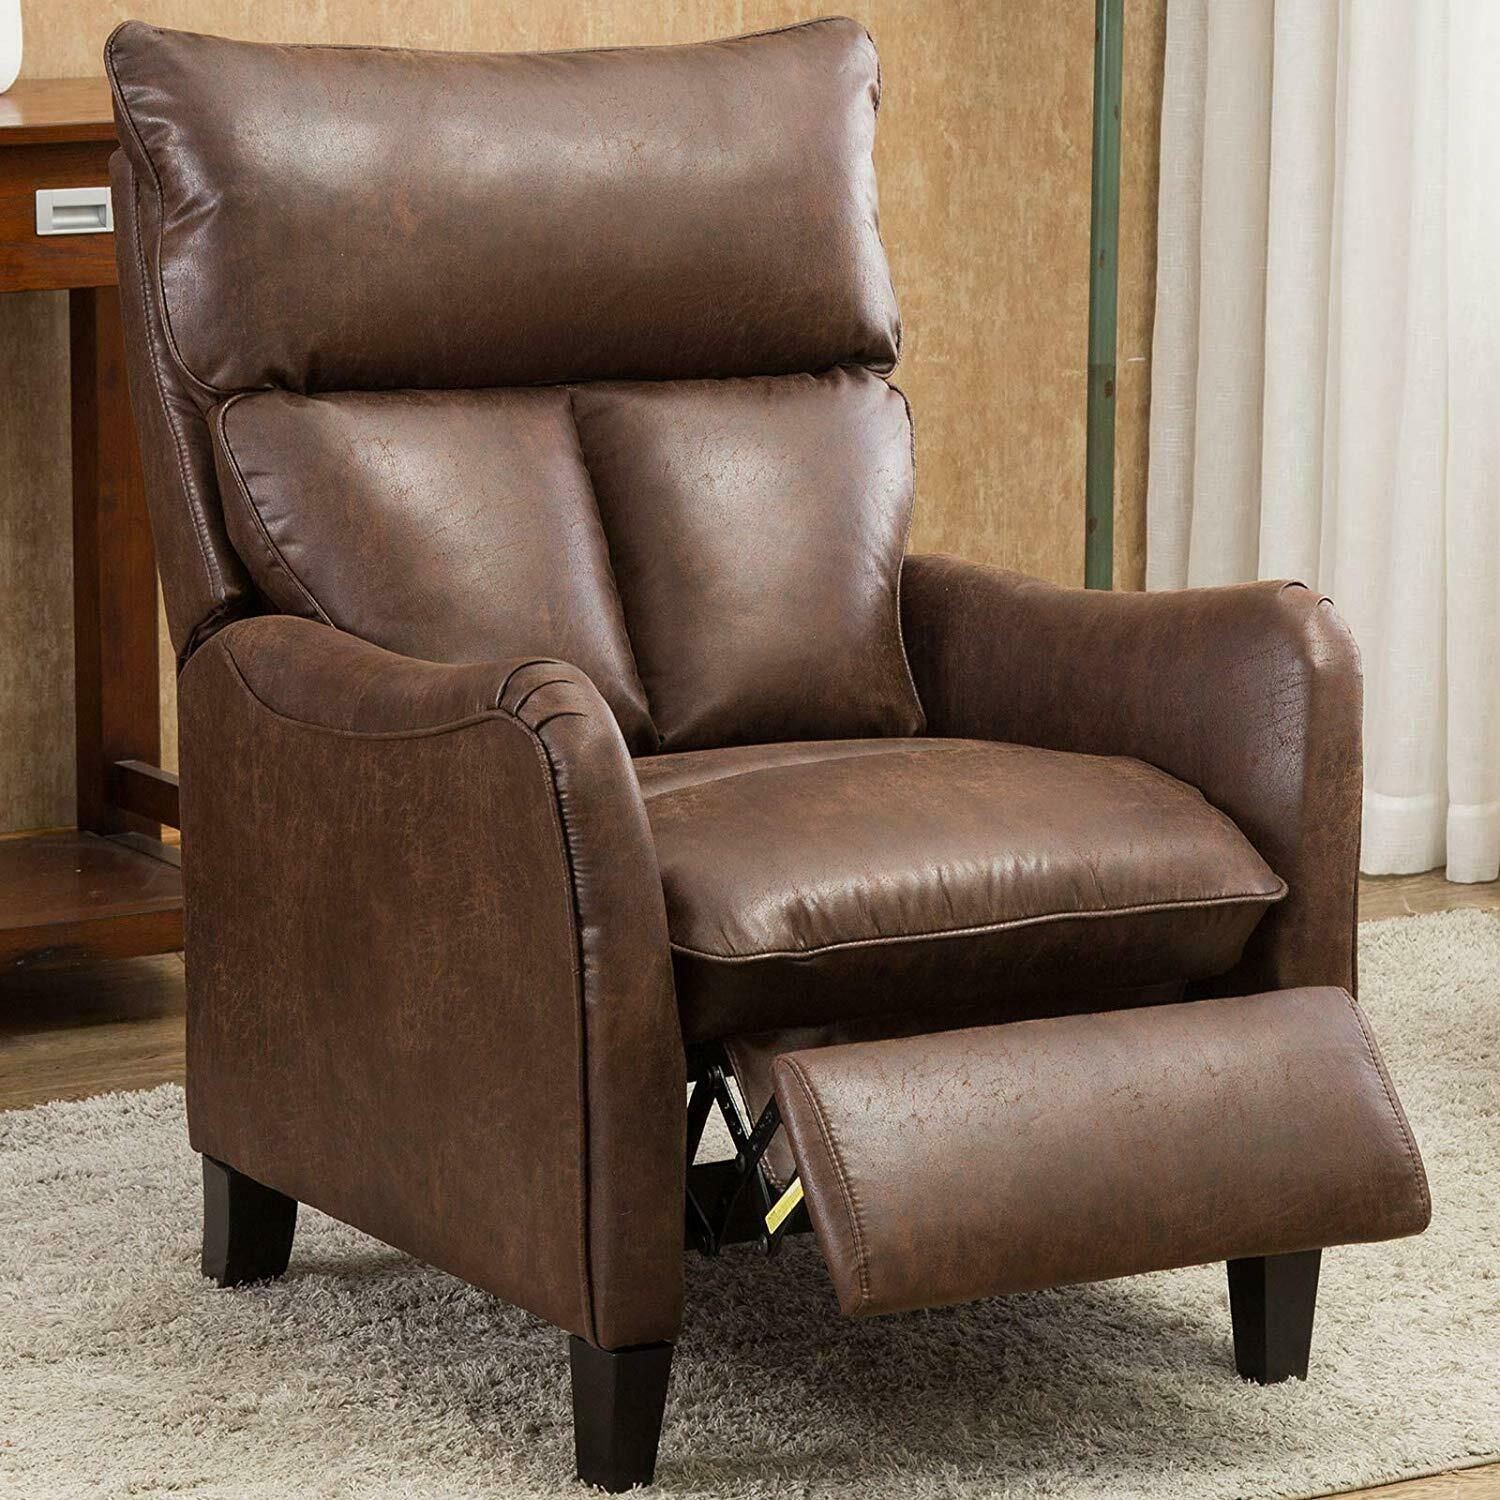 Accent Recliner Chair Roll Arm Push Back Armchair Lounge